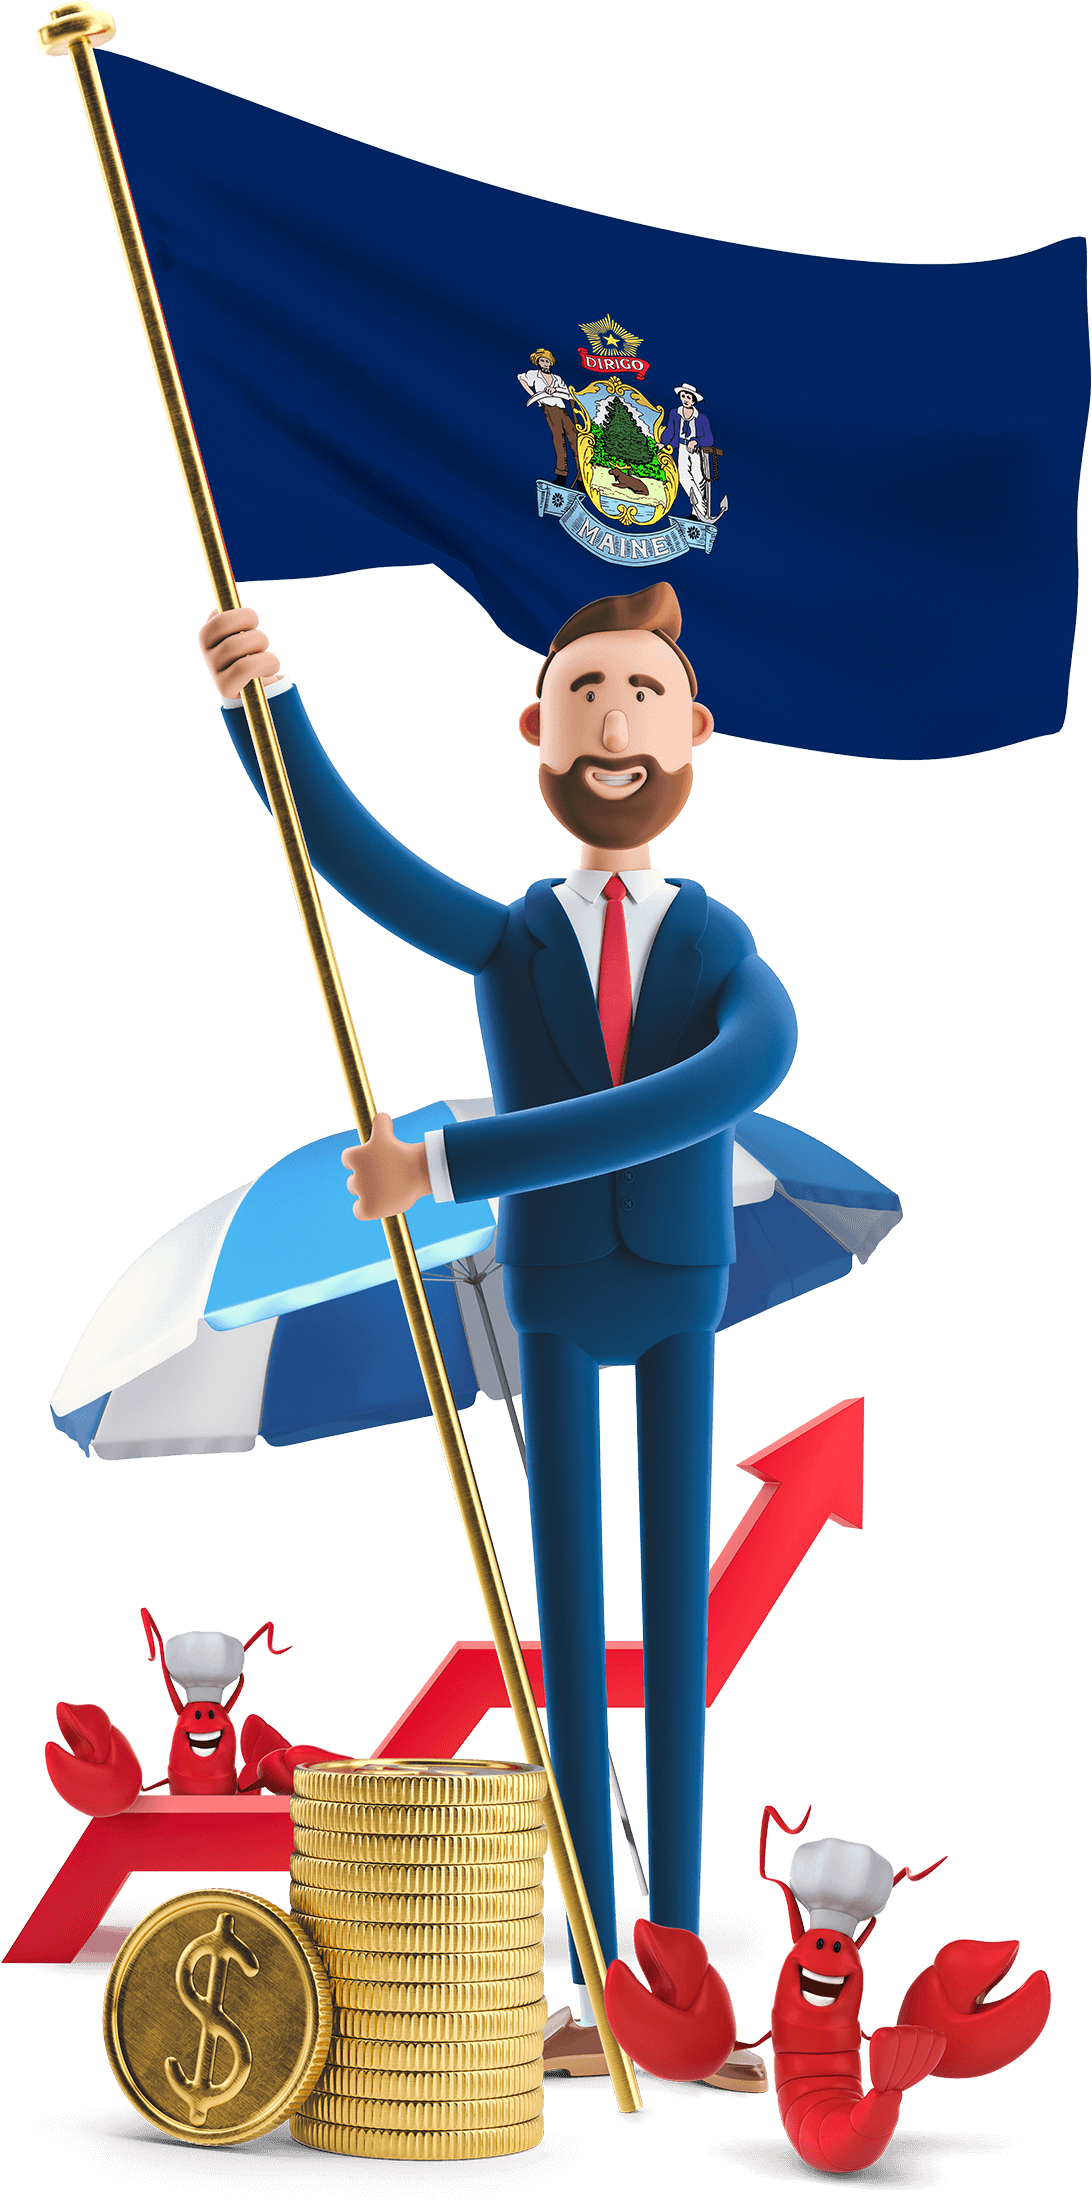 Maine flag held by MetCredit USA businessman who's standing beside a beach umbrella and lobsters with chef hats are at his feet